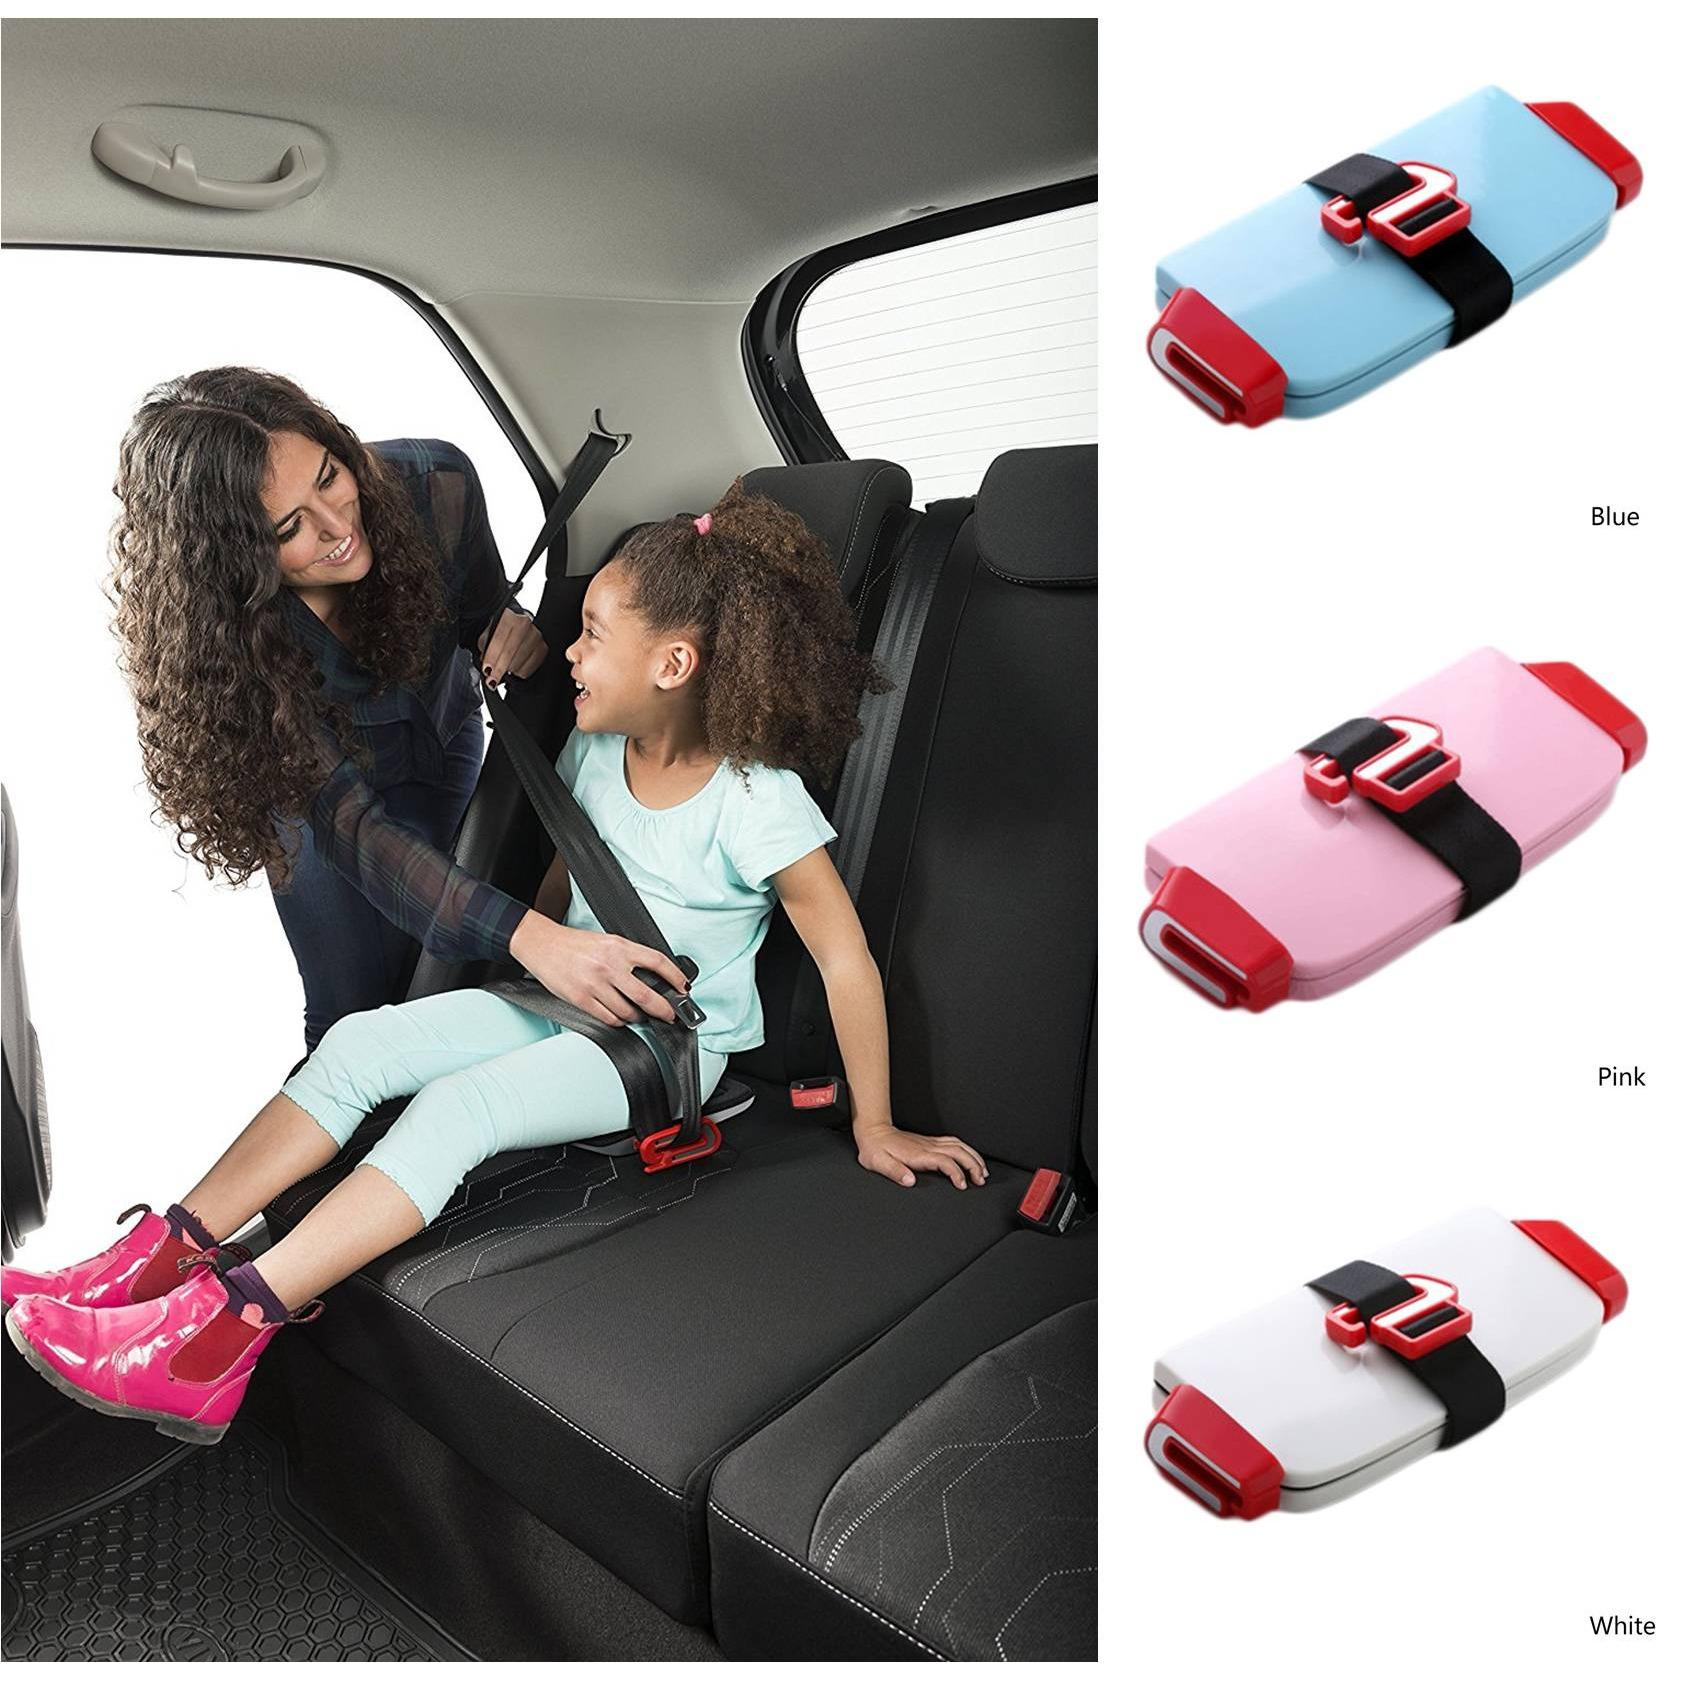 Where To Shop For Car Safety Seat Booster Breathable Cushion Portable Comfortable For Baby Toddler Kids Children